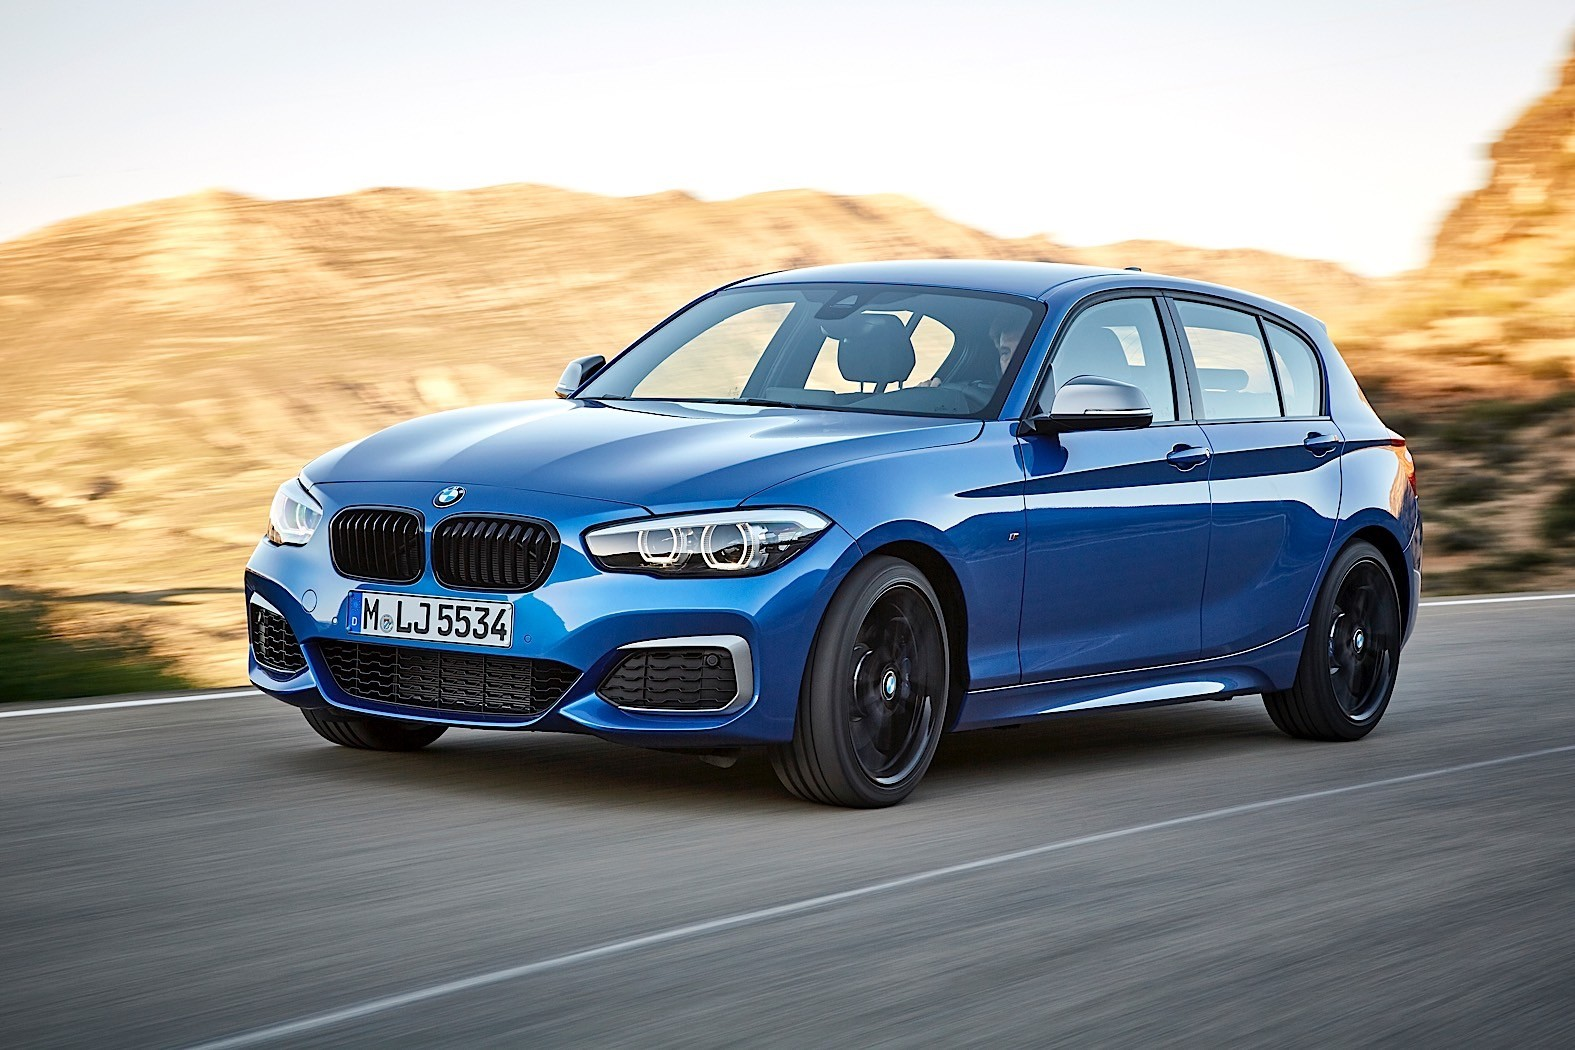 2018-bmw-2-series-facelift-is-just-a-tiny-little-nose-job-also-a-swan-song-117692_1